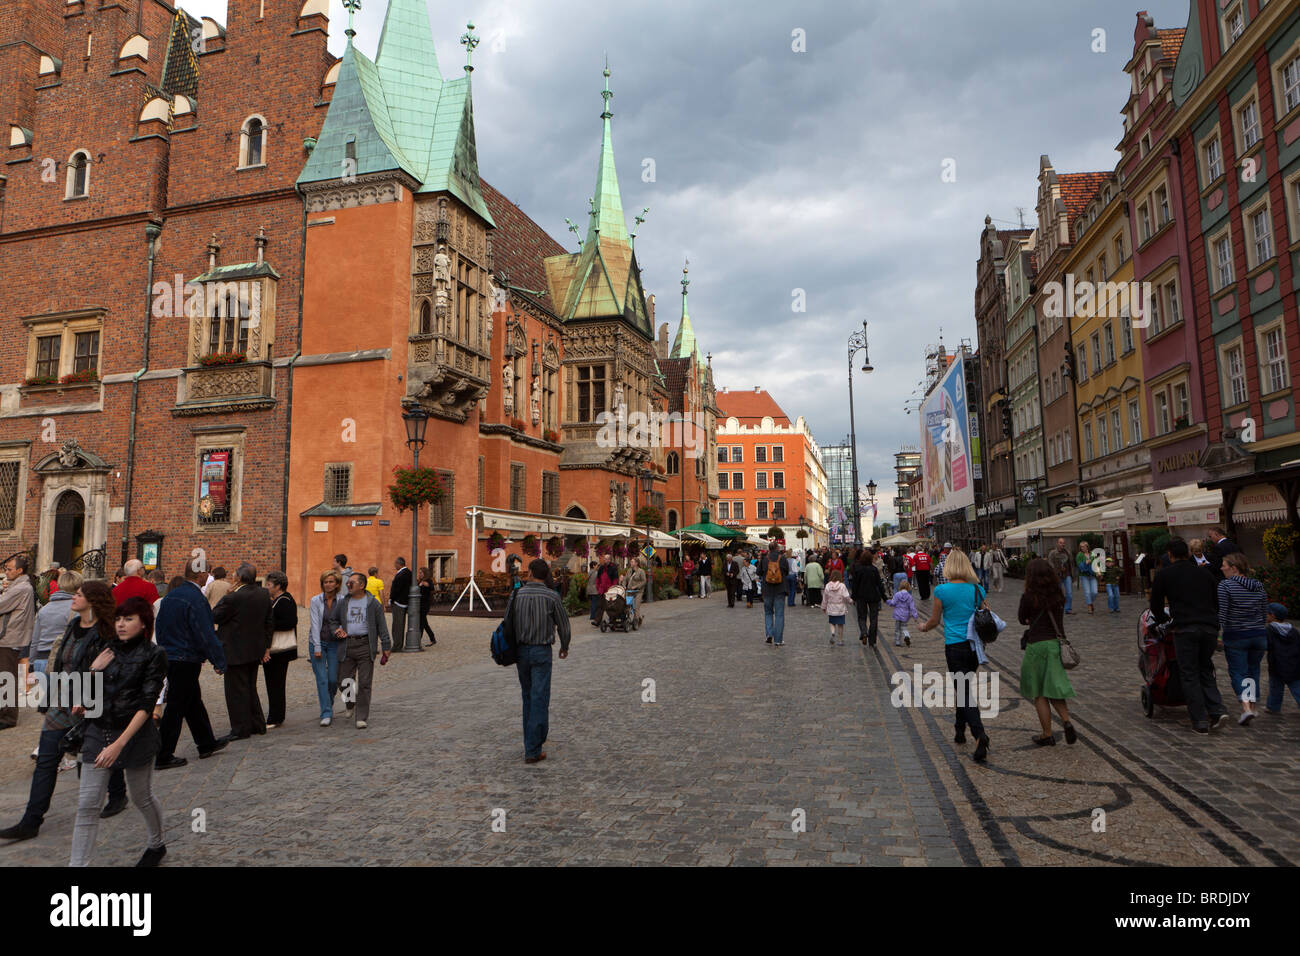 Poland. Wroclaw (formerly Breslau). 14th C Gothic Town Hall. - Stock Image